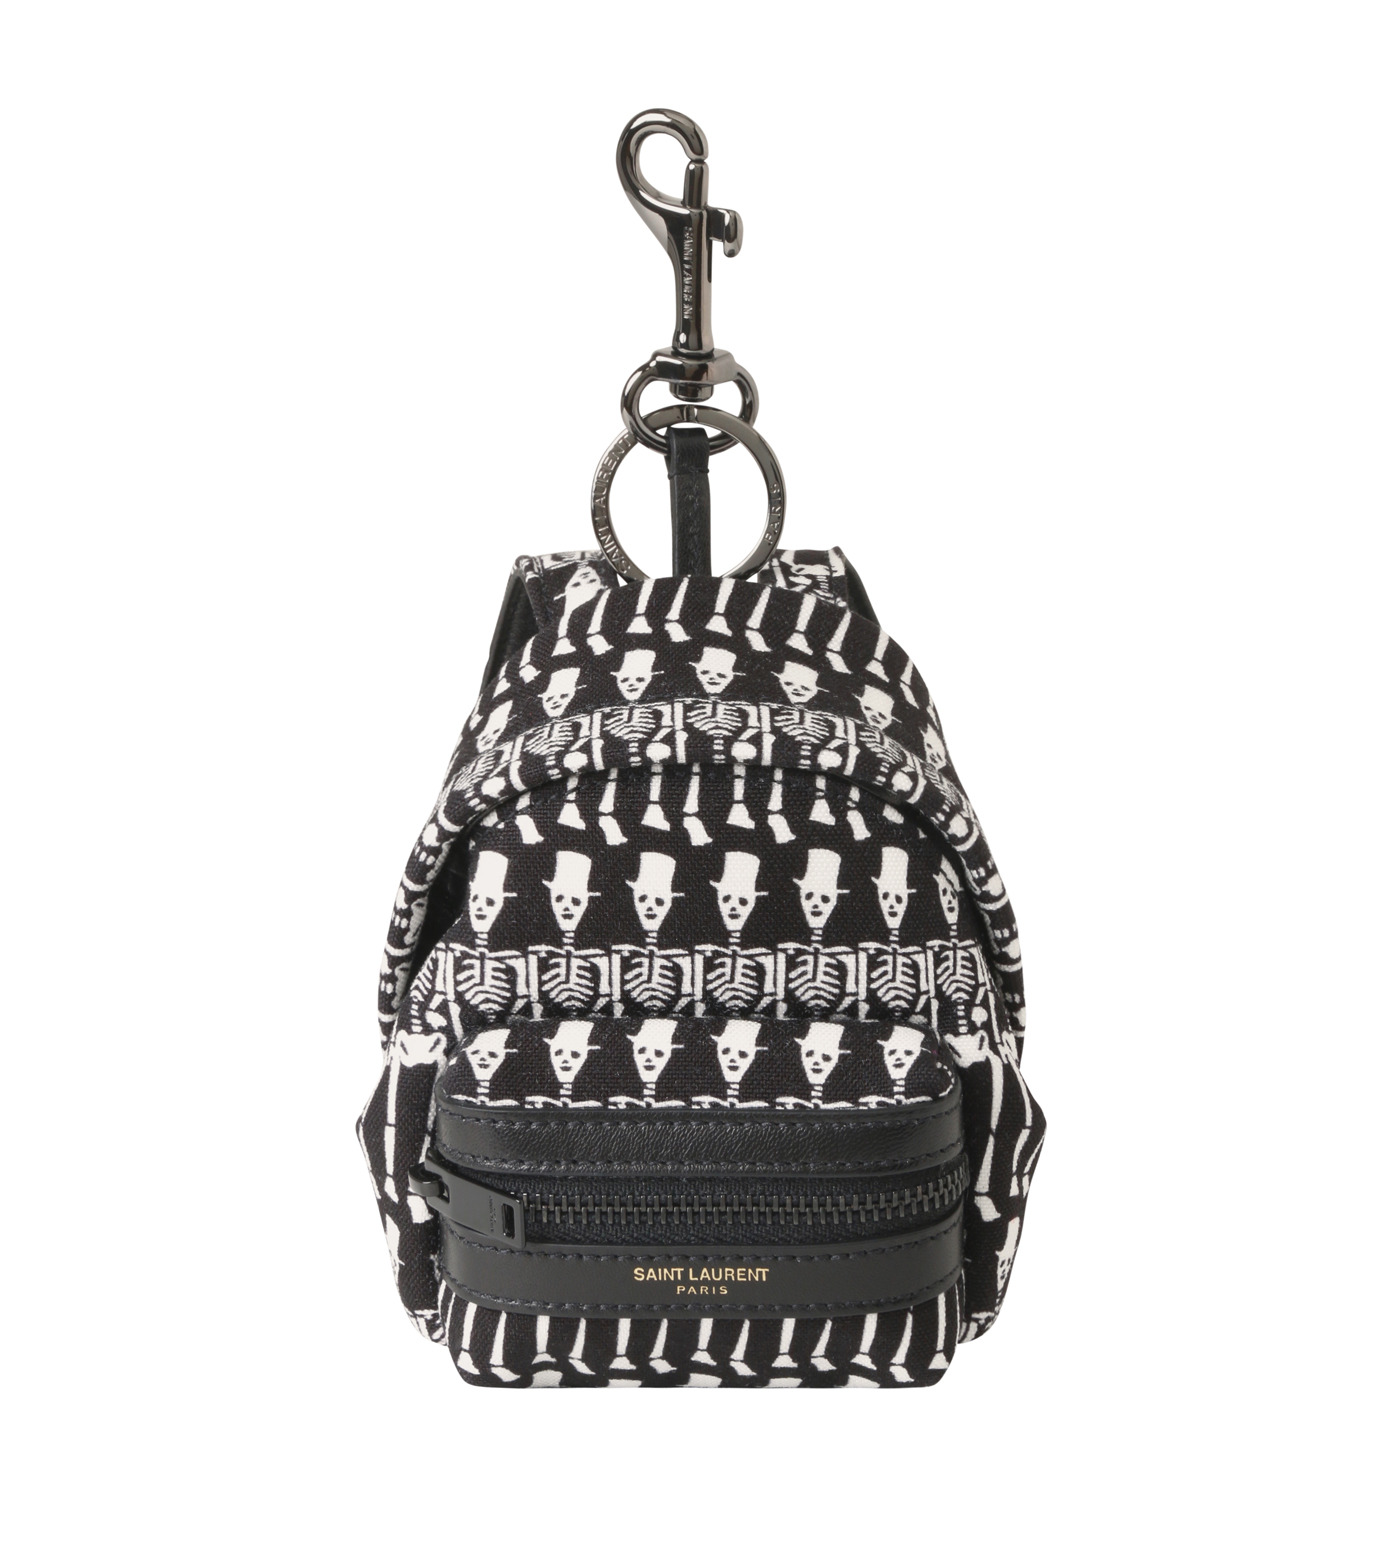 SAINT LAURENT(サンローラン)のSkull Mini Backpack-BLACK-441911-GR82U-13 拡大詳細画像1